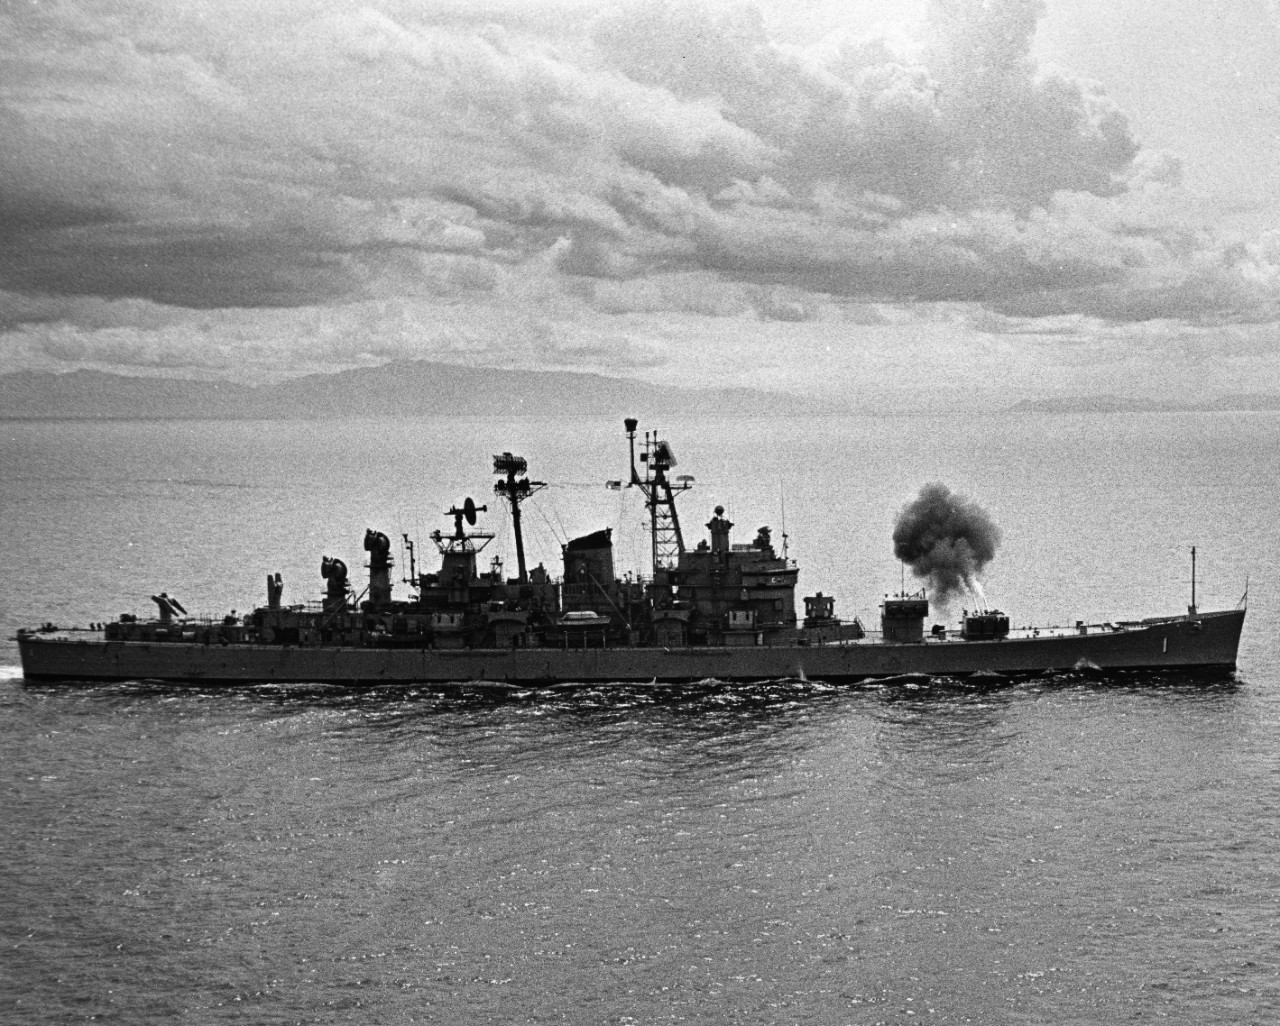 USS Boston (CAG-1) firing her 8 inch guns at North Vietnam WBLCs (Water Borne Logistics Craft) on 9 September 1968.